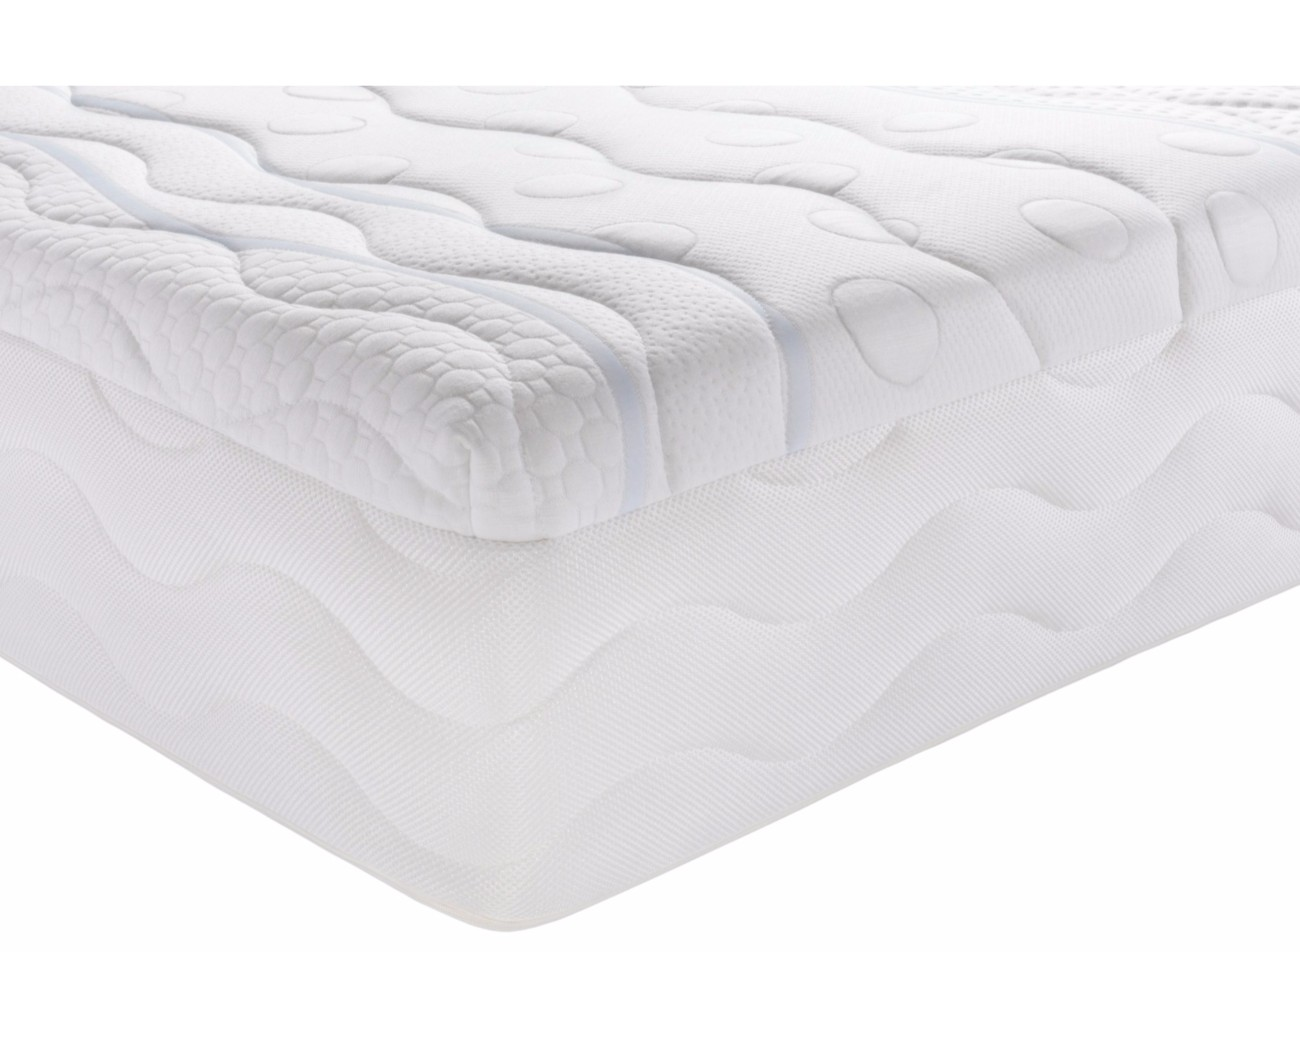 thumb_relyon_memory_pocket_serenade_1550_mattress_corner_cutout_relyon_2014